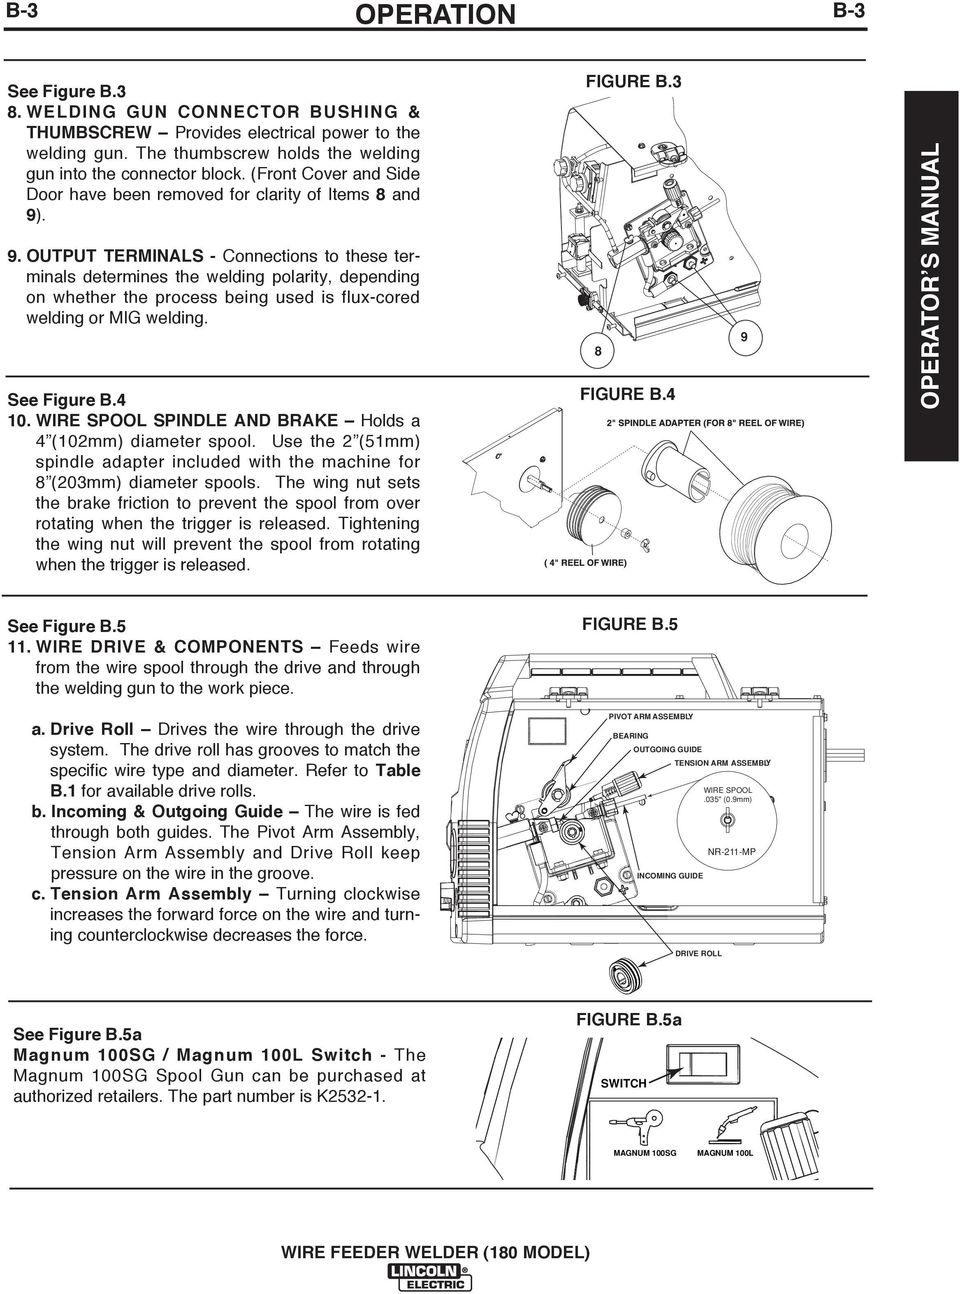 Wire Feeder Welder 180 Model Pdf Mig Welding Equipment Diagram Output Terminals Connections To These Determines The Polarity Depending